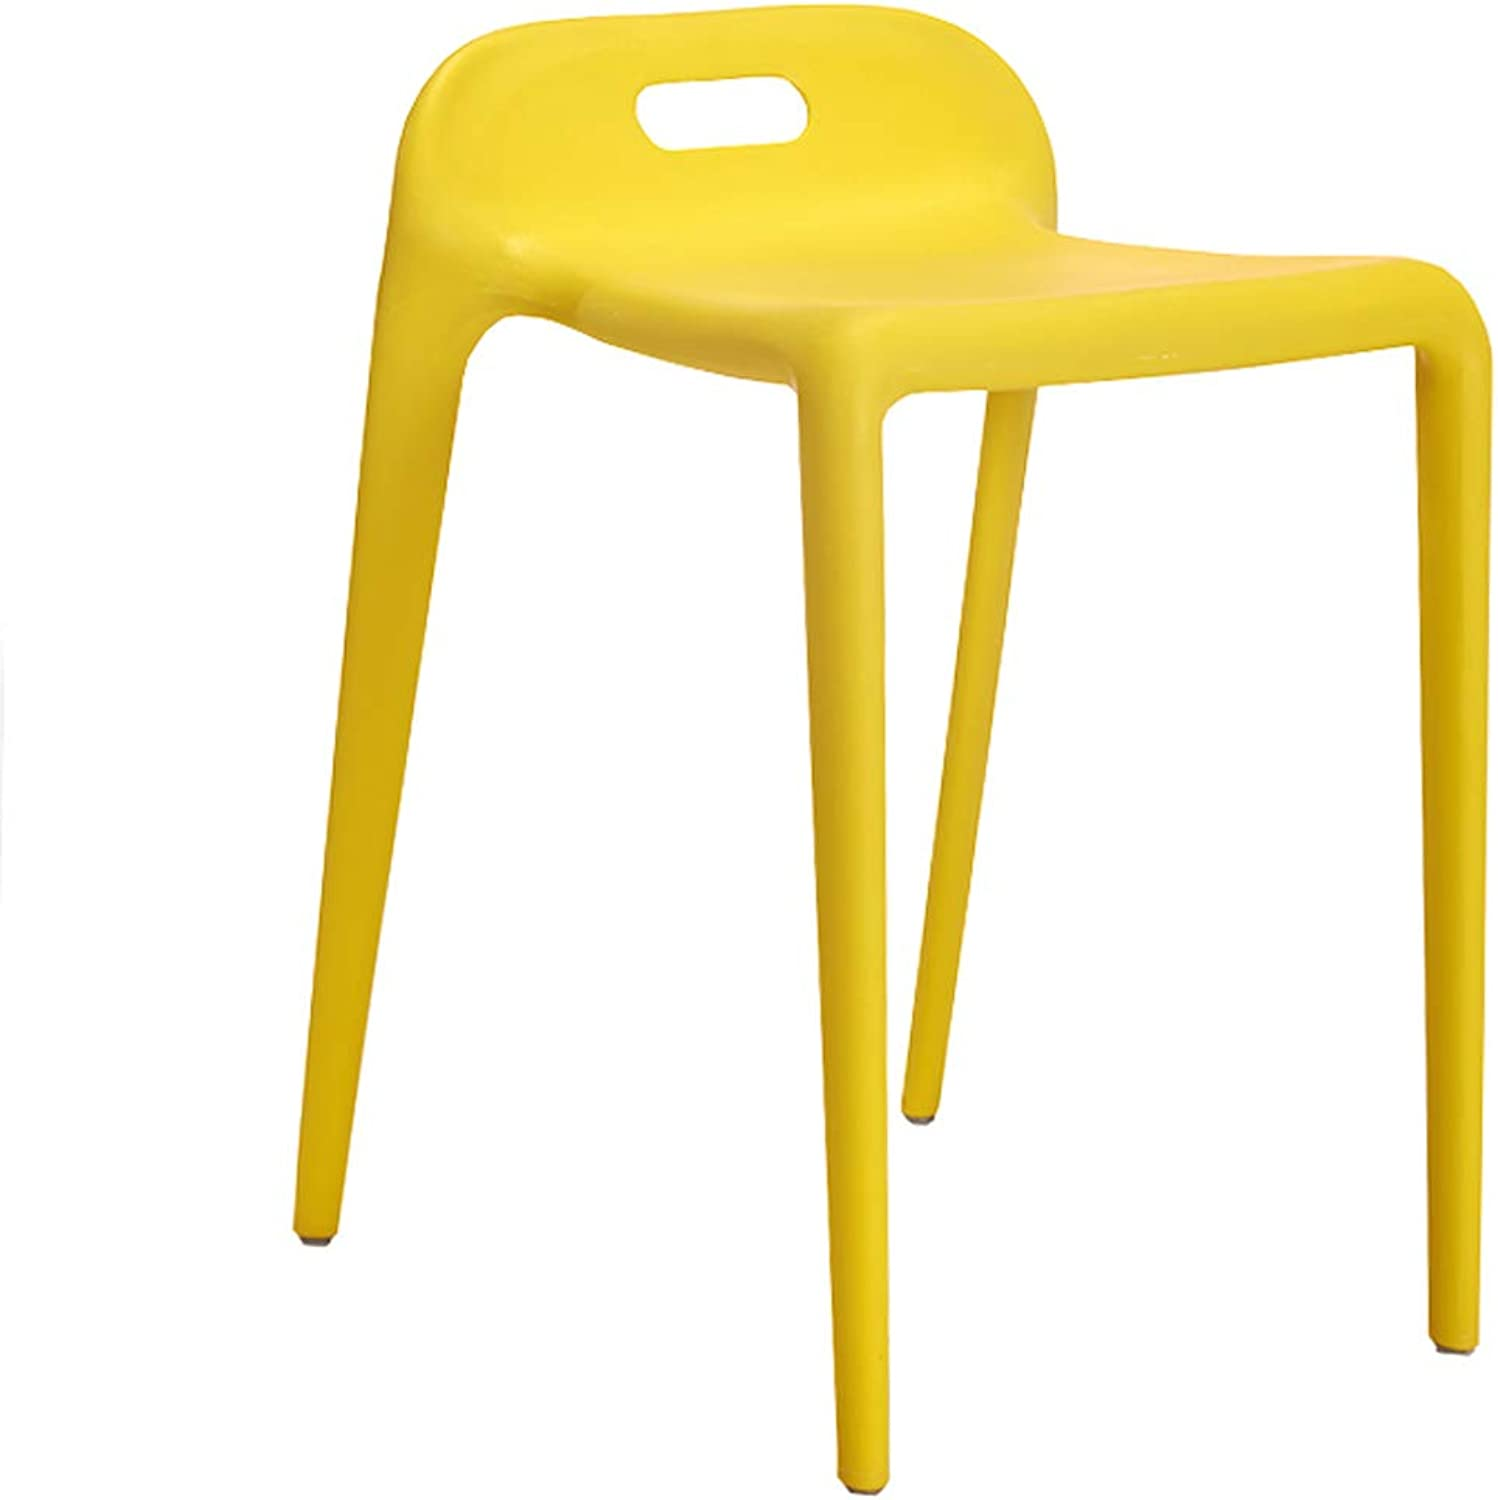 GSHWJS Modern Fashion Plastic Chair Family Restaurant Stool Simple Restaurant Waiting for Rest Chair Multi color Optional 34x44x56cm Put The Stool (color   Yellow)